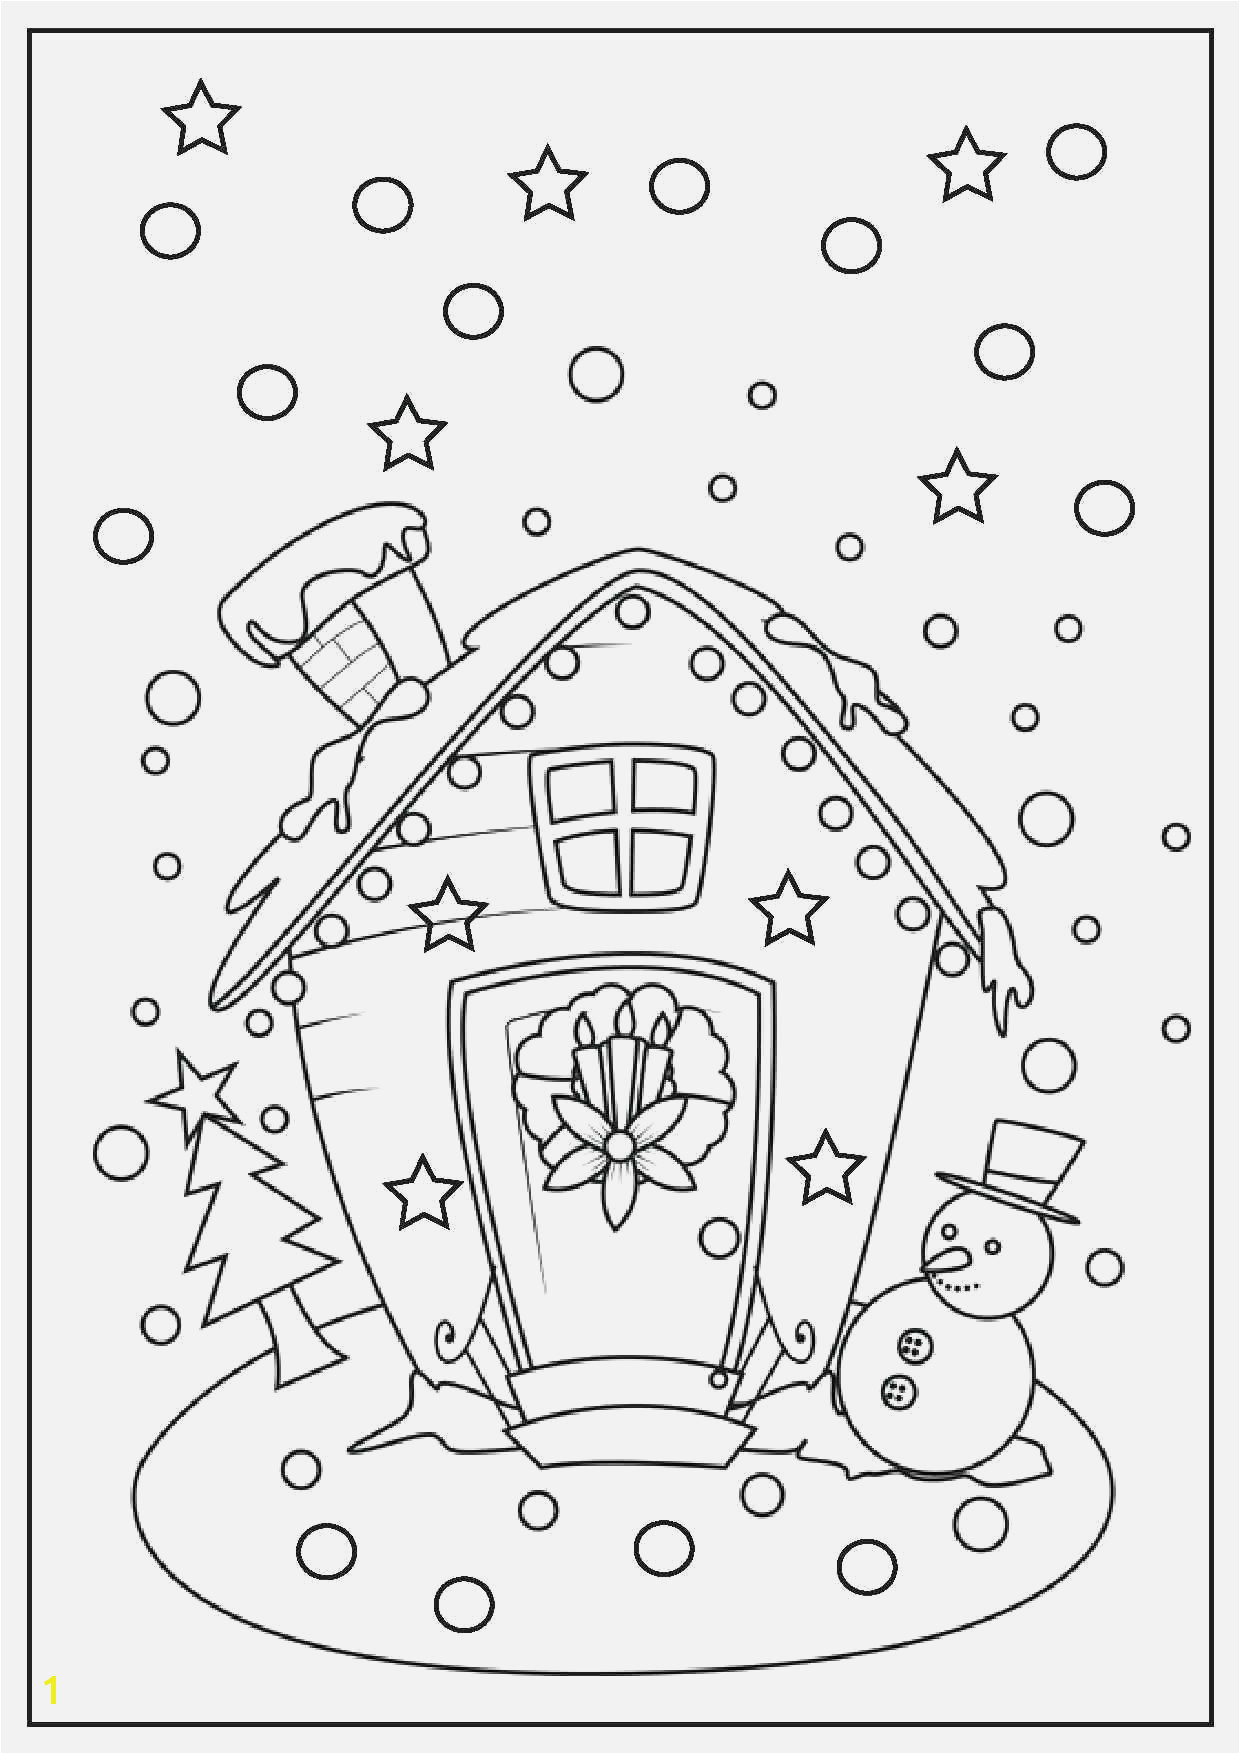 Spongebob Coloring Pages Printable Coloring Pages Coloring Pages Christmas Unique Picture Coloring Line Elegant Color